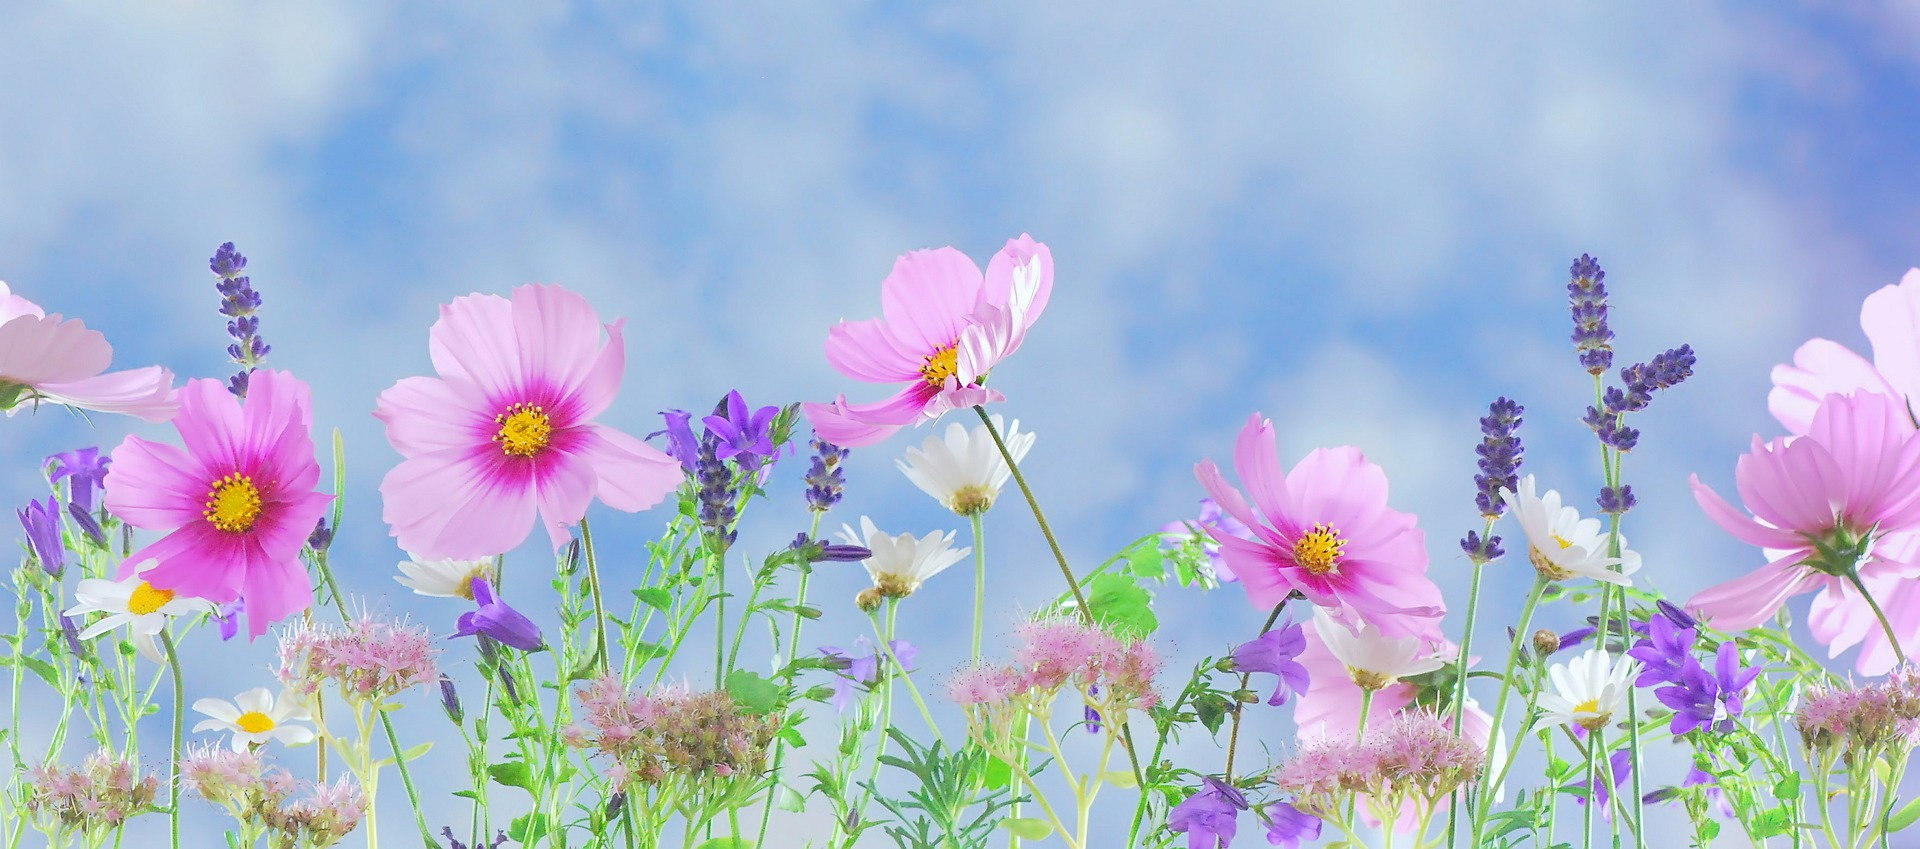 Pink flowers against blue sky background